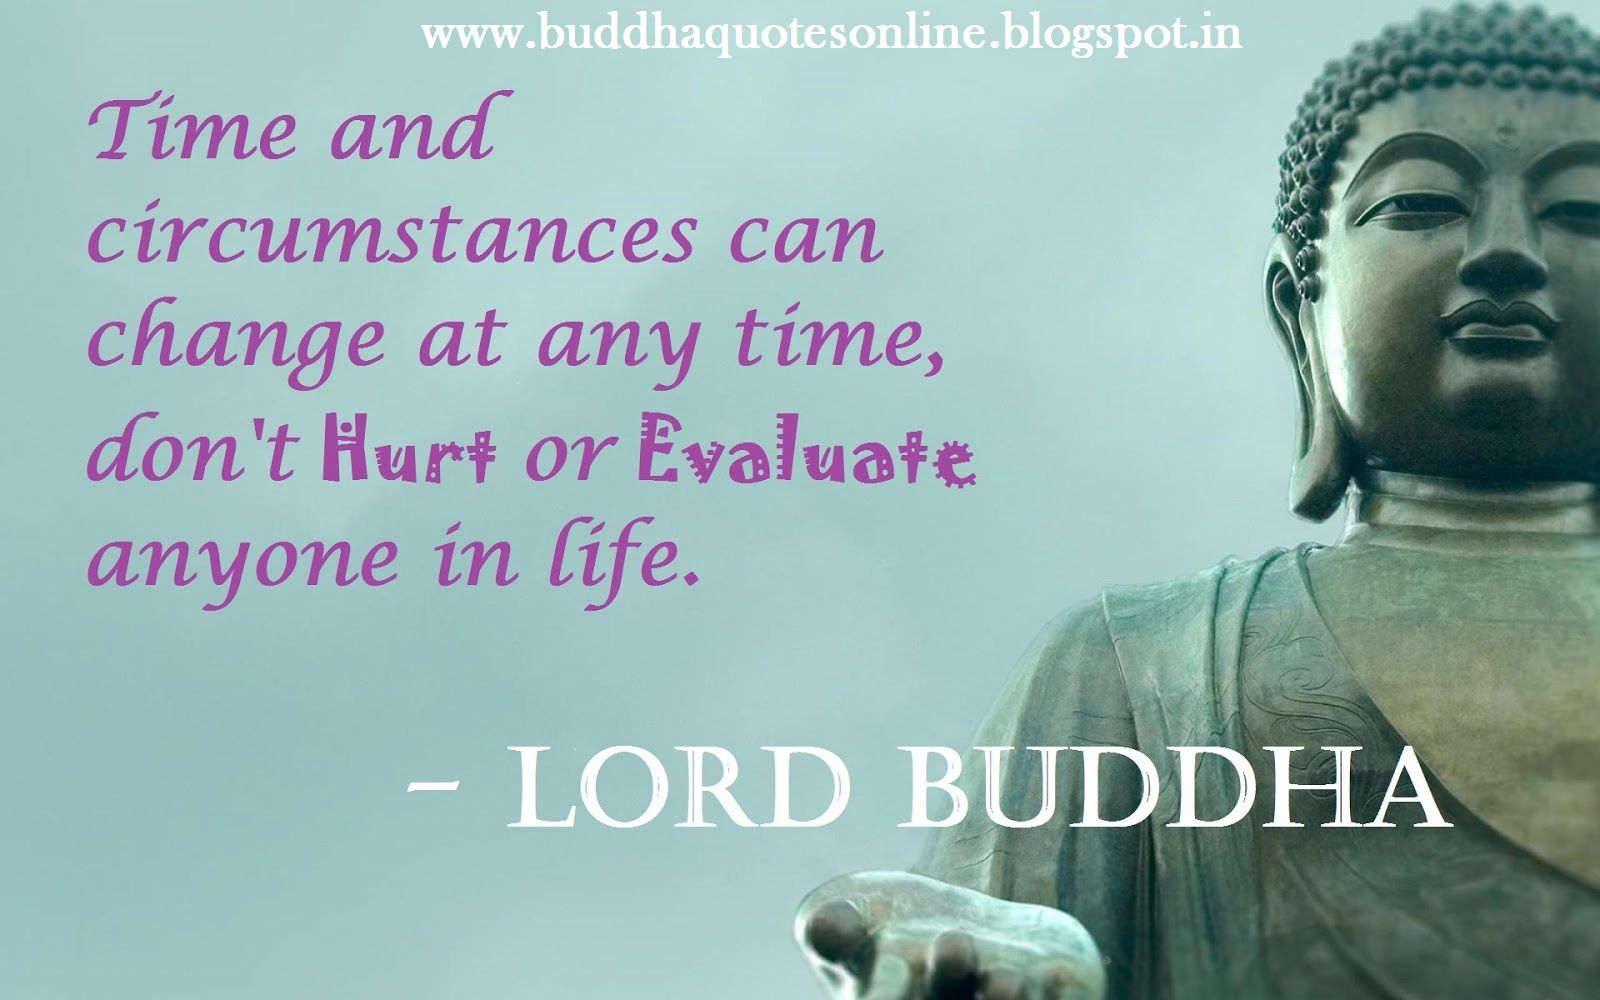 buddha quotes critical thinking 91 121 113 106 buddha quotes critical thinking